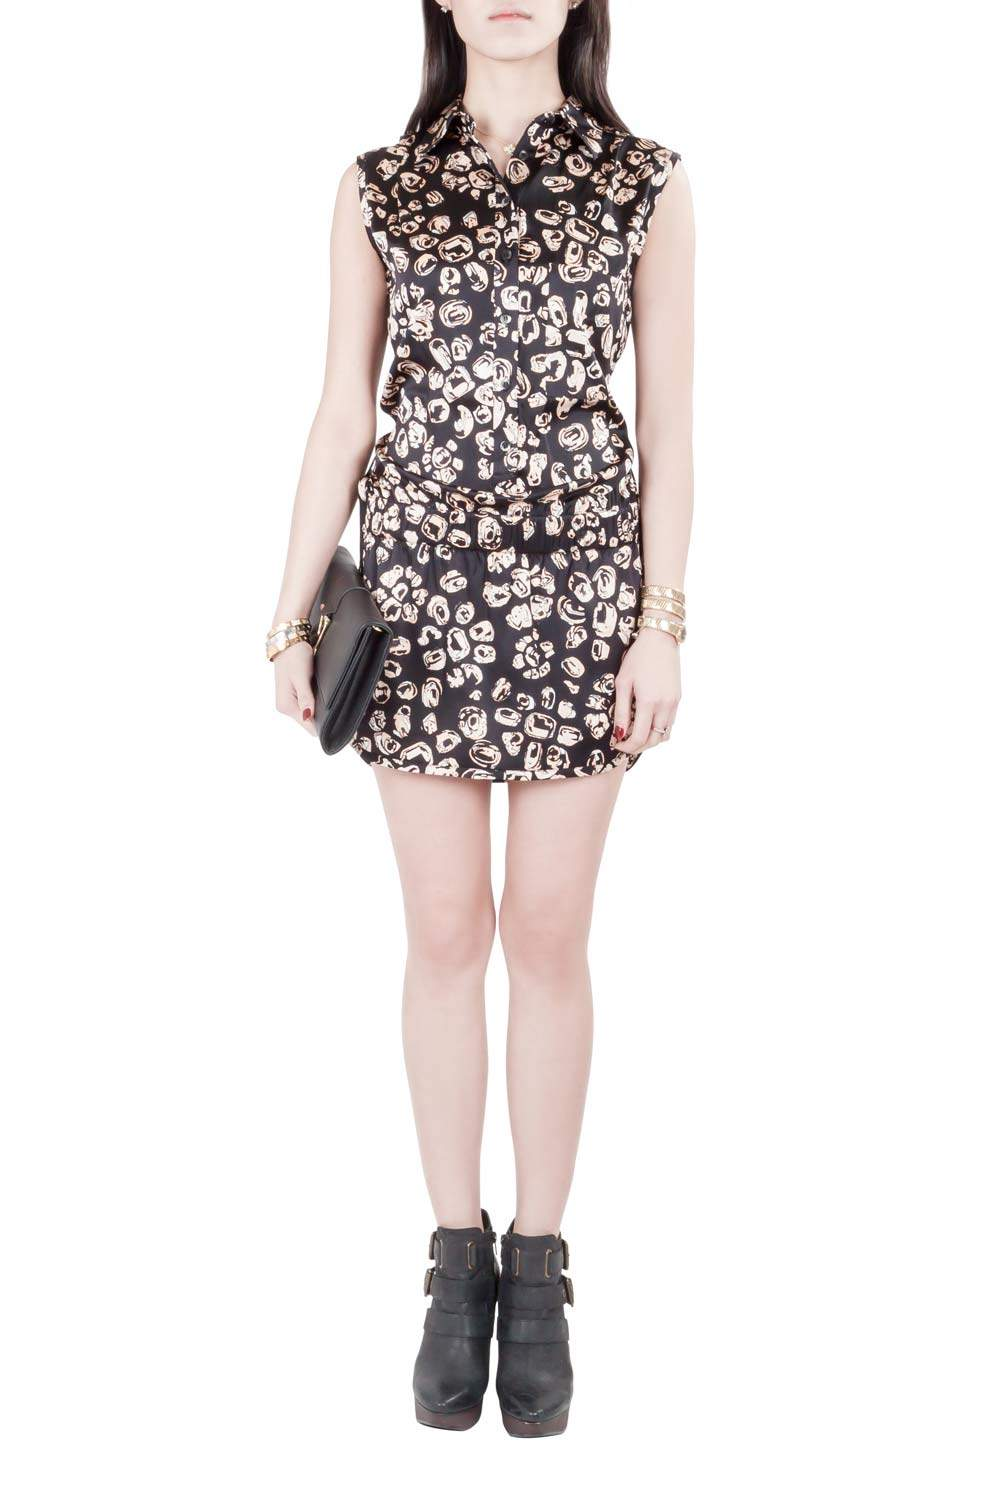 Thakoon Addition Black and Blush Silk Abstract Print Shirt Top Playsuit XS